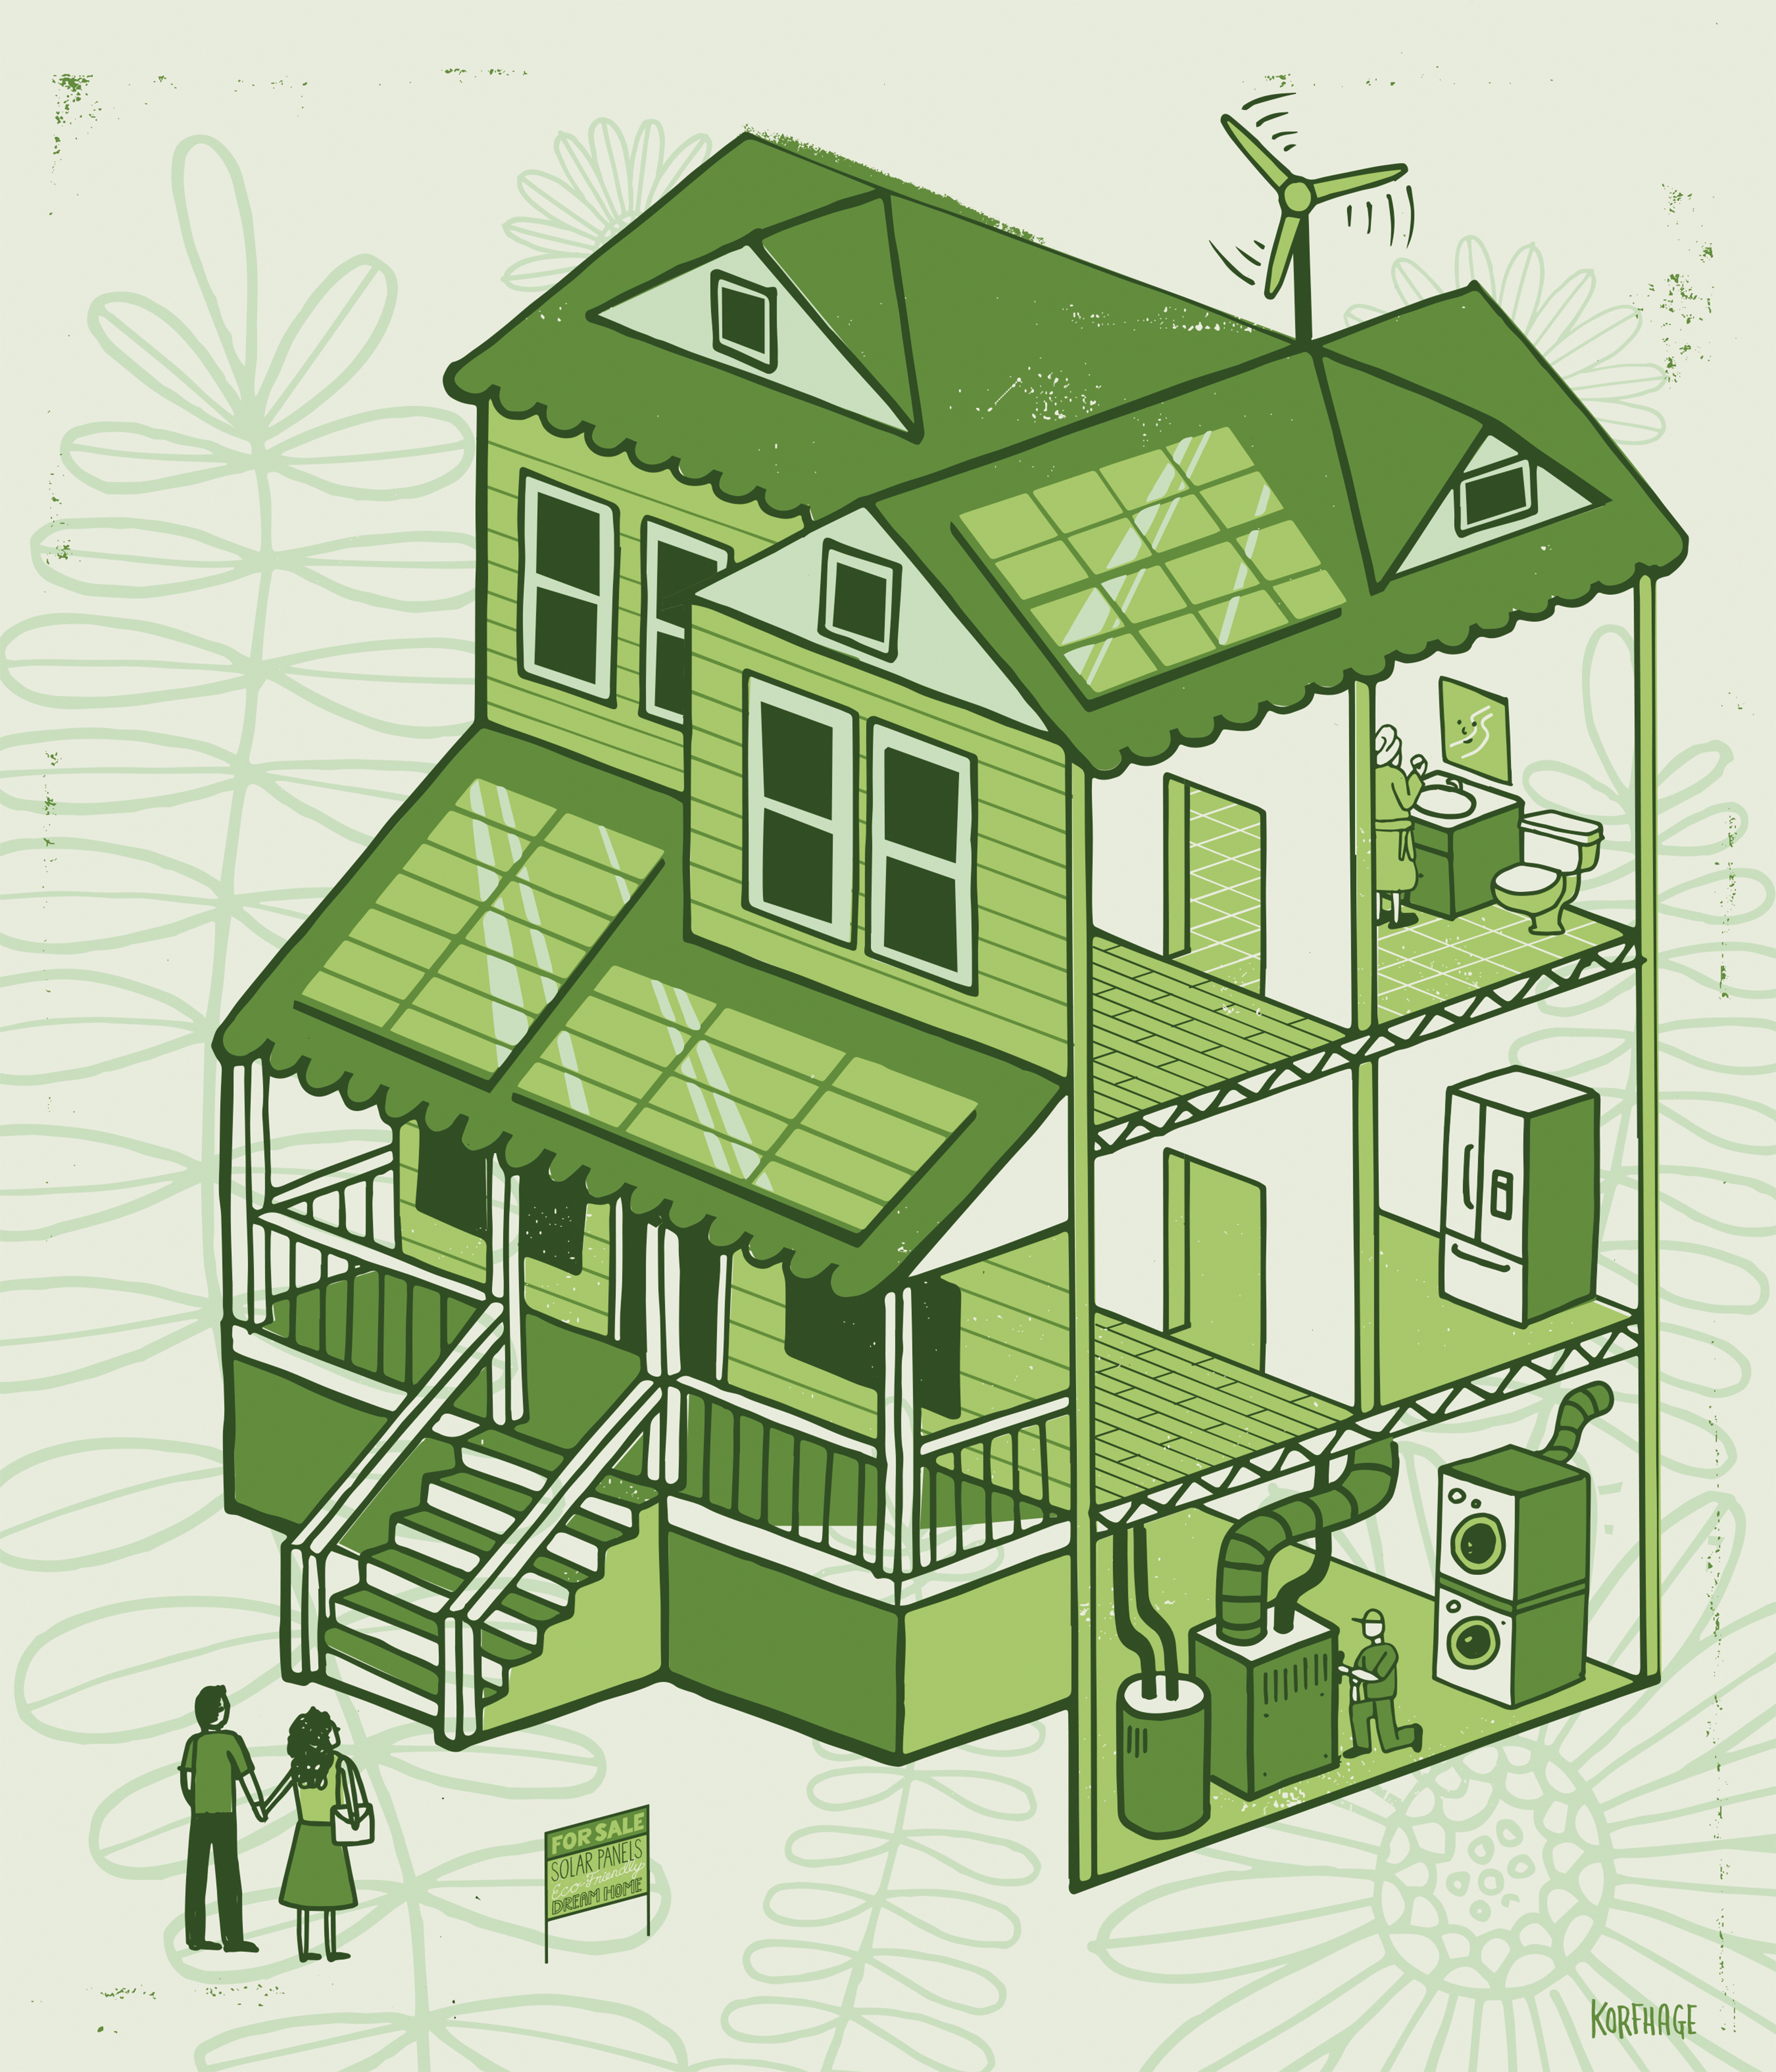 Will green improvements boost your home's value? - The